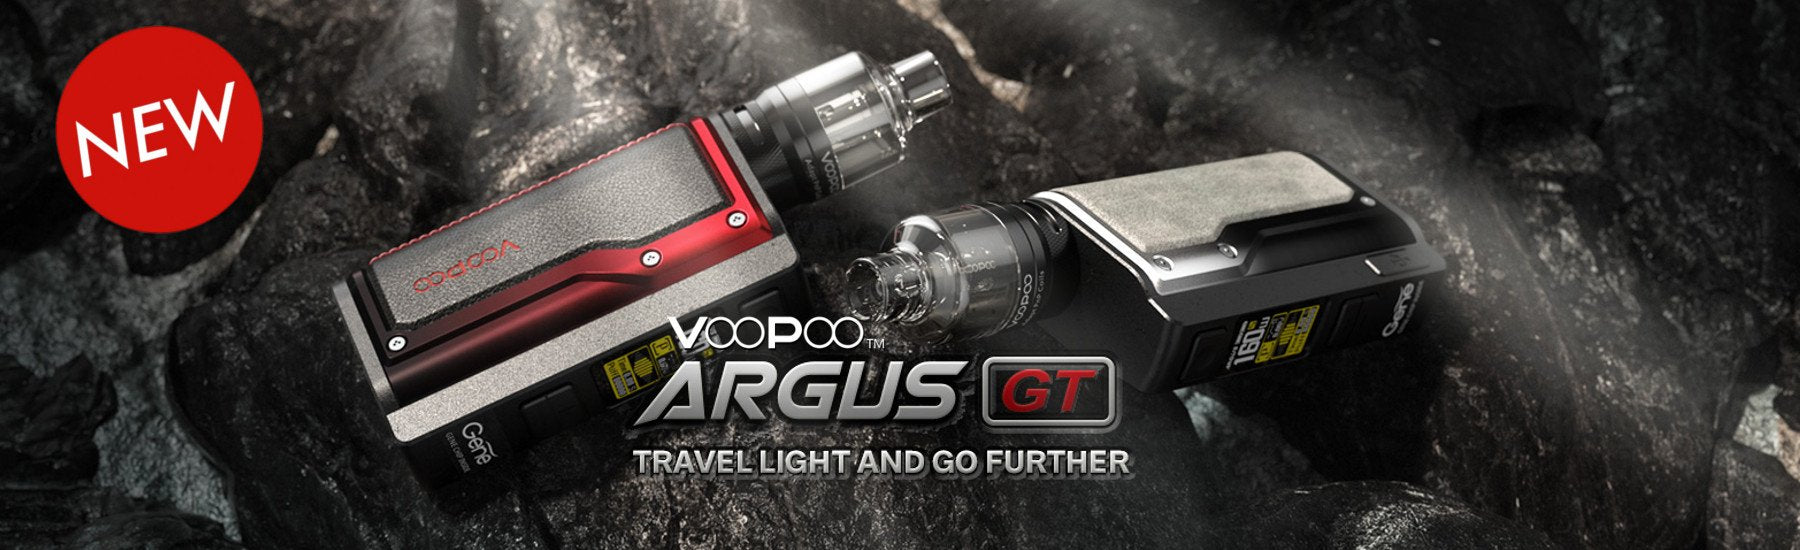 Voopoo Argus GT, Vape Kit, Dual Battery, 160W